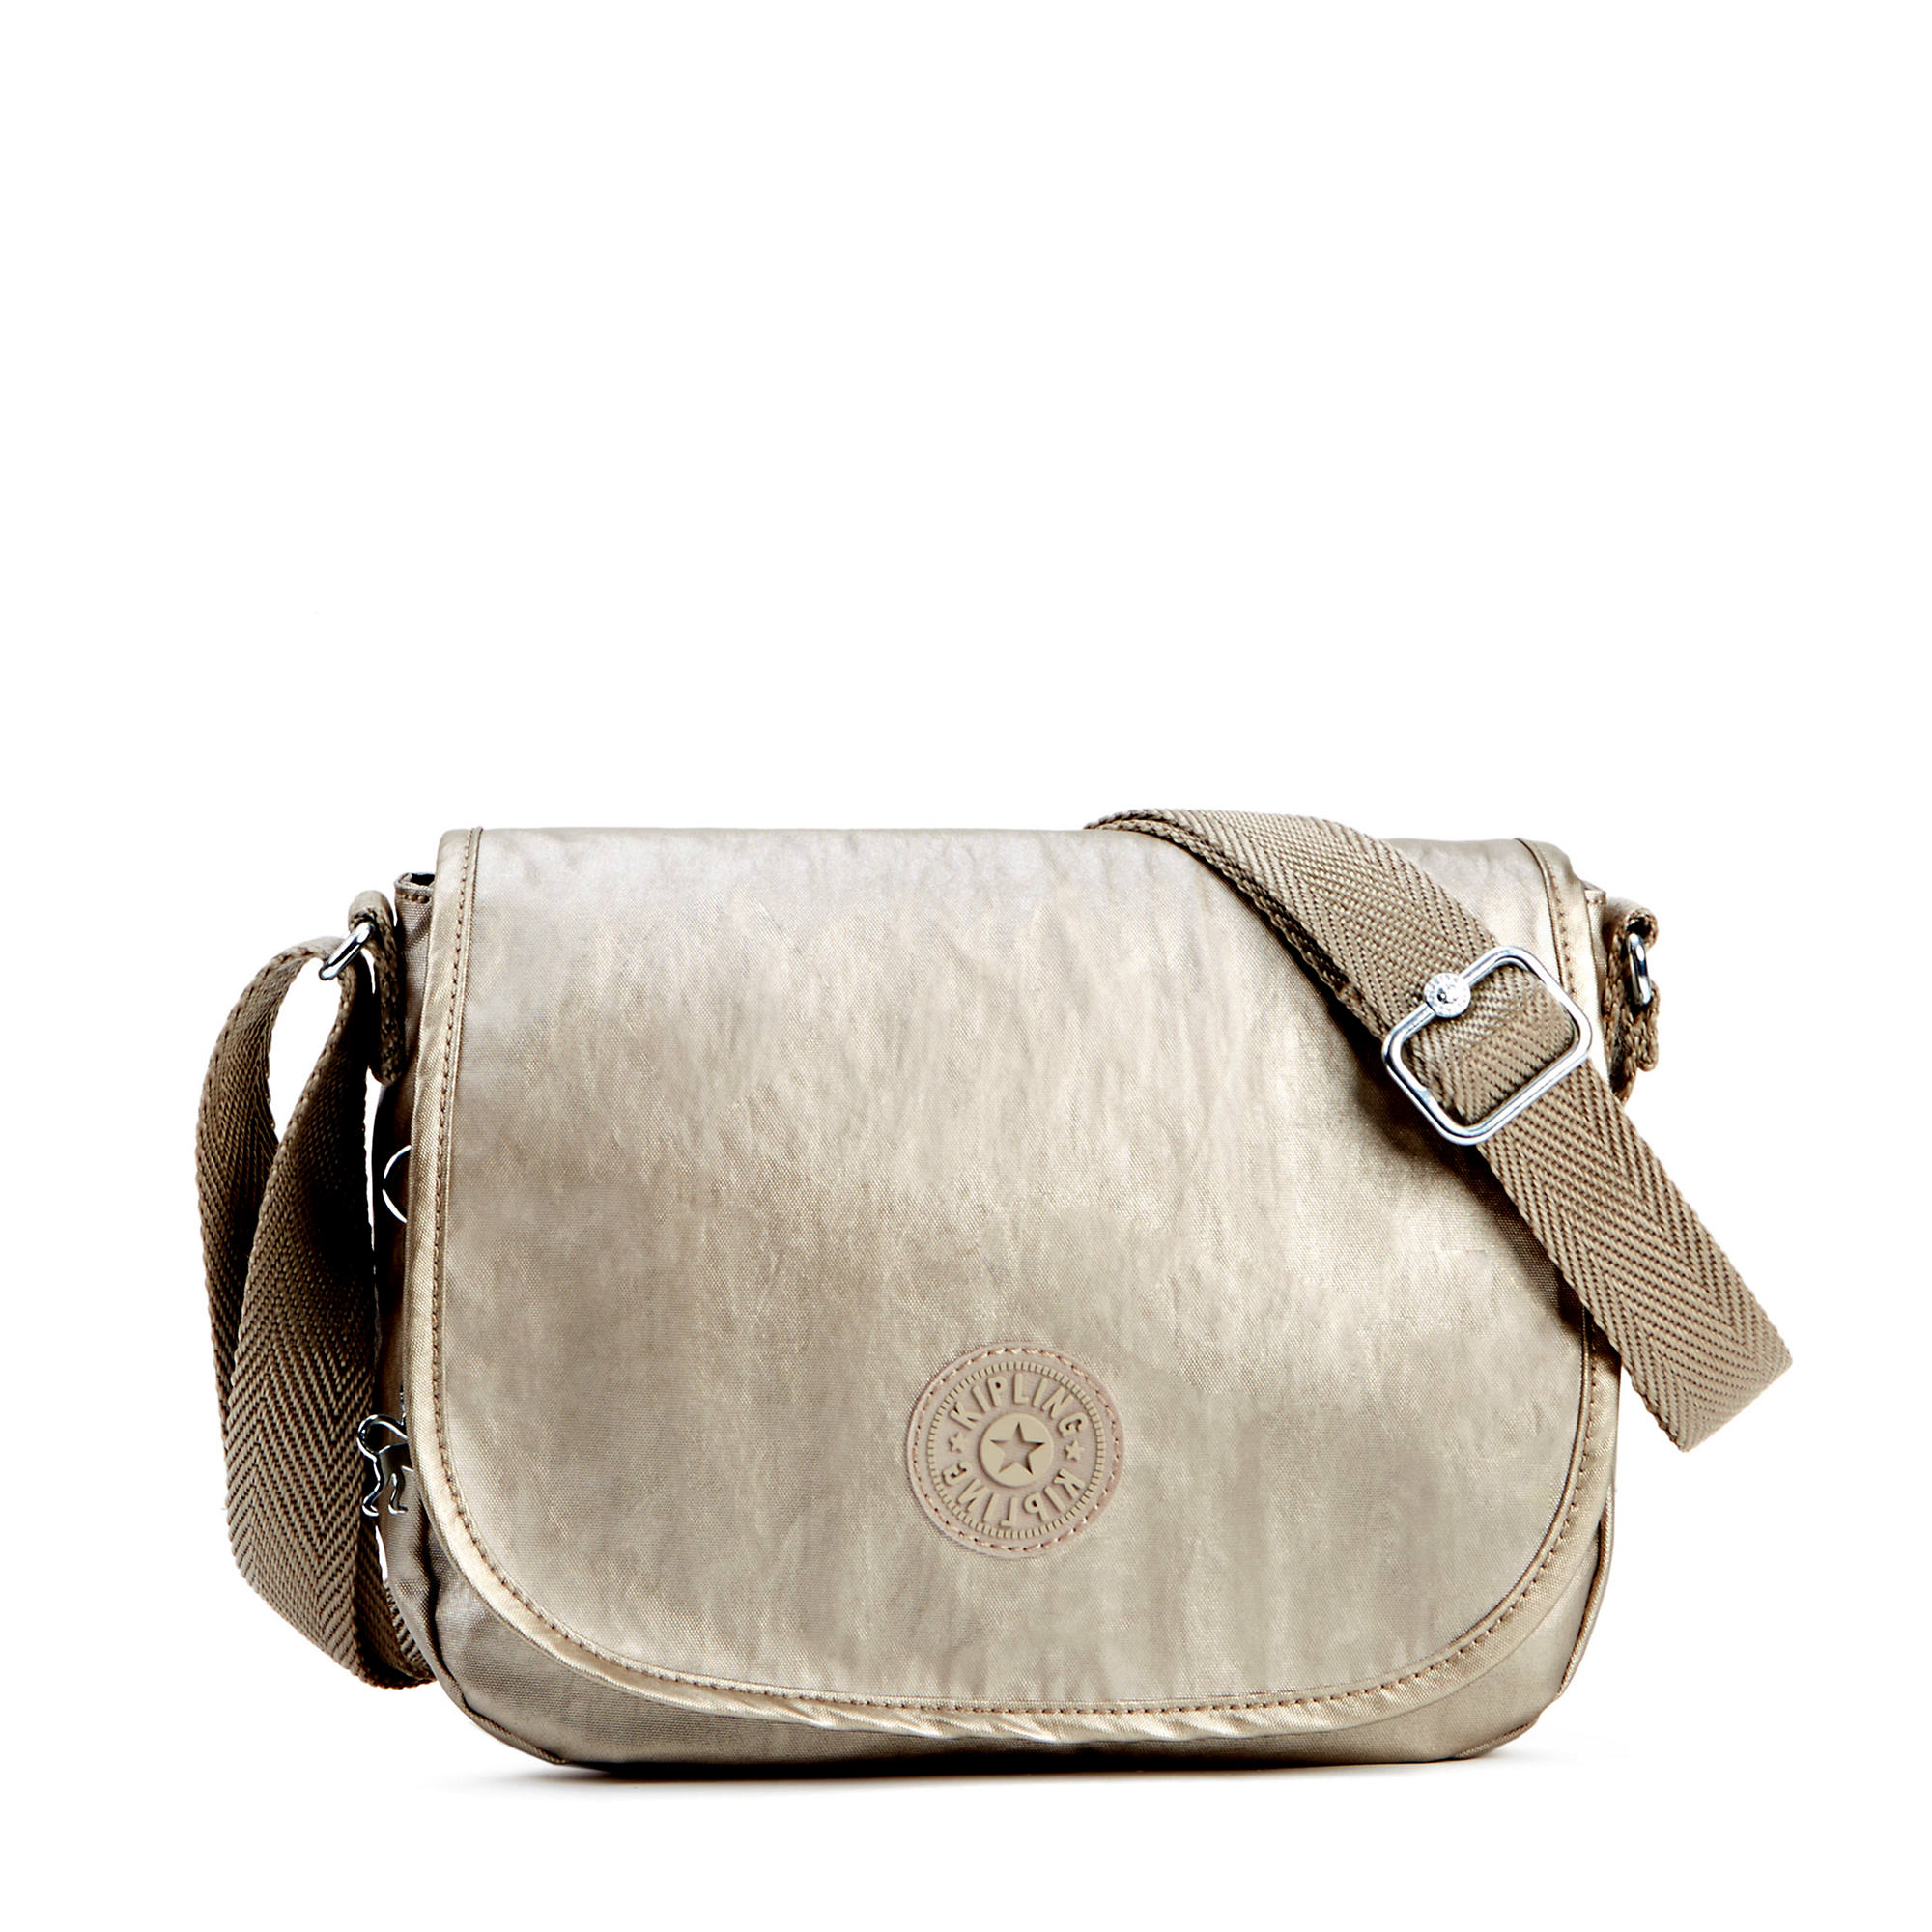 4f9a30307a8 Haven Metallic Crossbody Bag